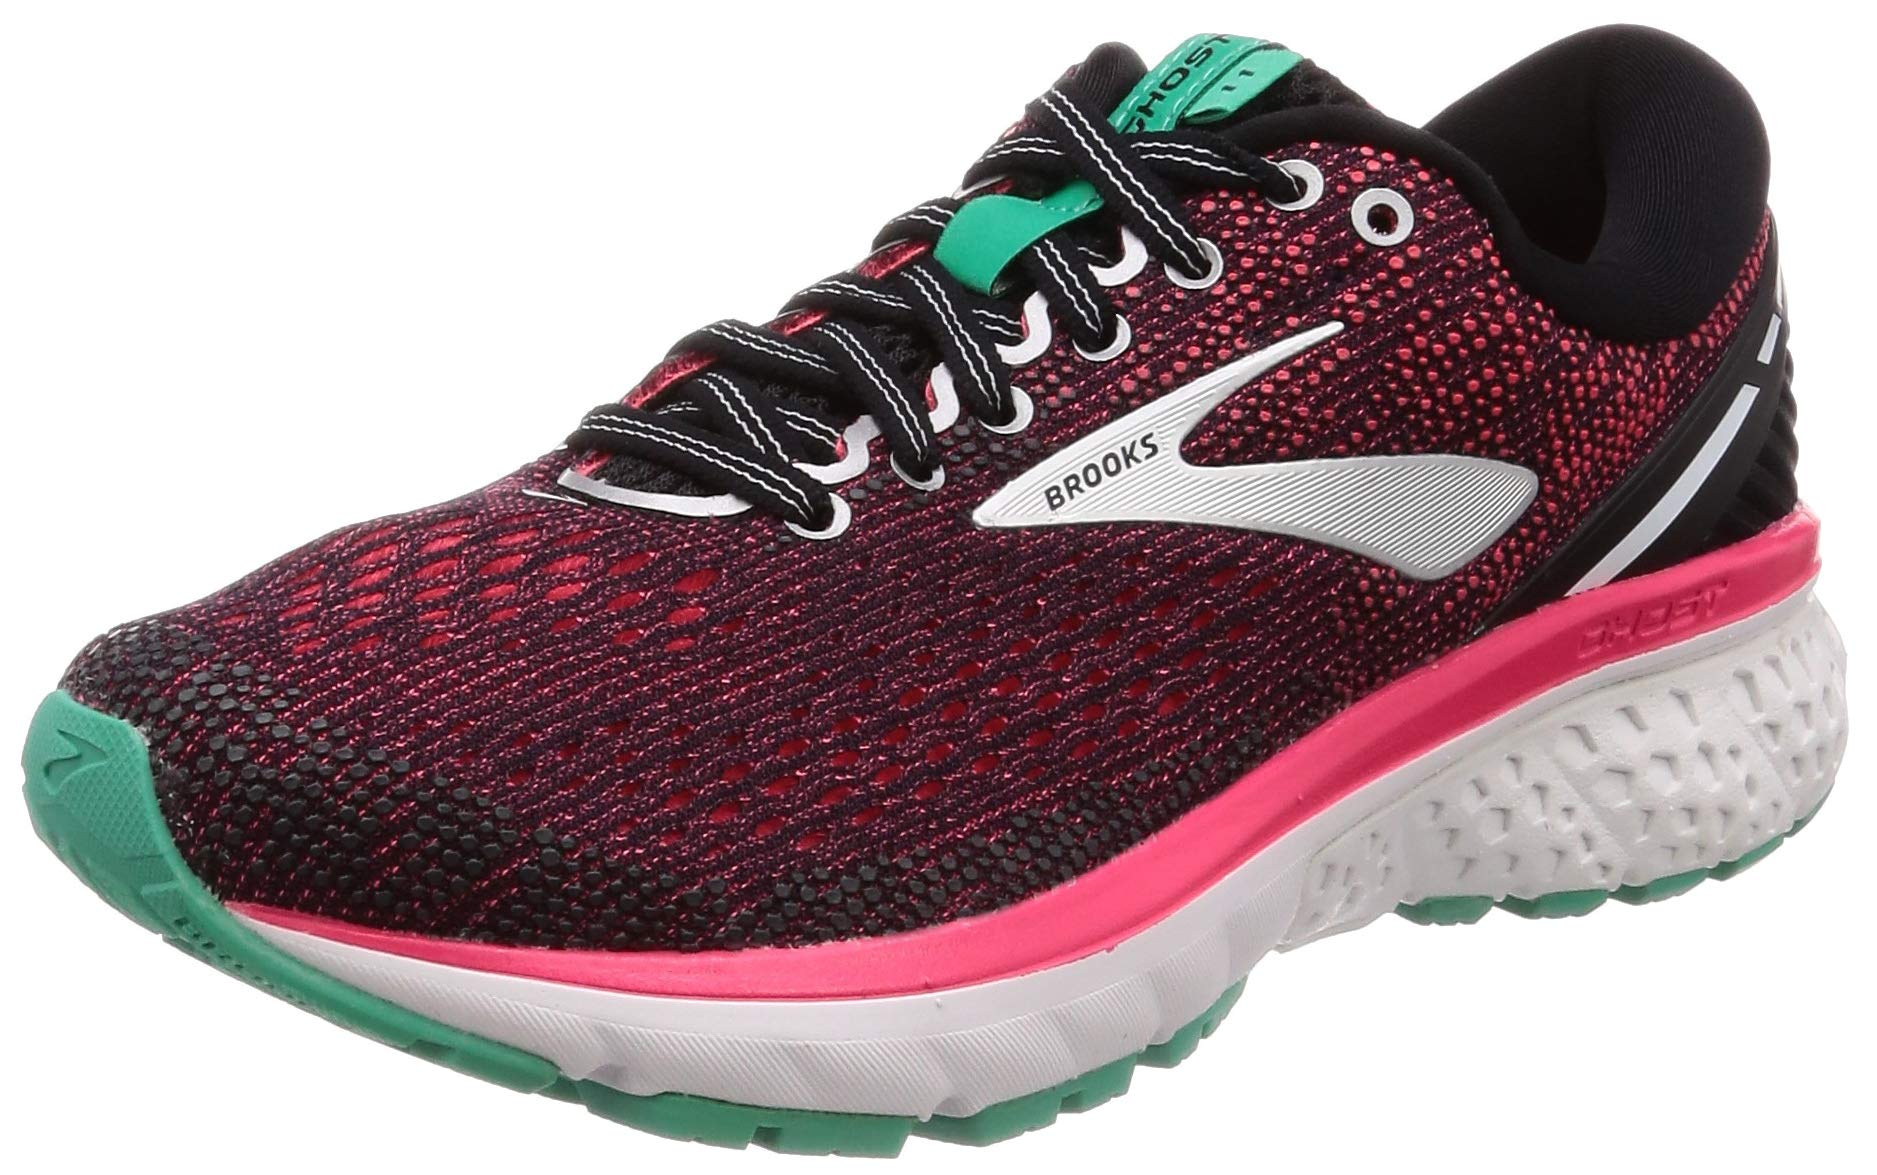 Brooks Womens Ghost 11 Running Shoe - Black/Pink/Aqua - D - 5.5 by Brooks (Image #1)